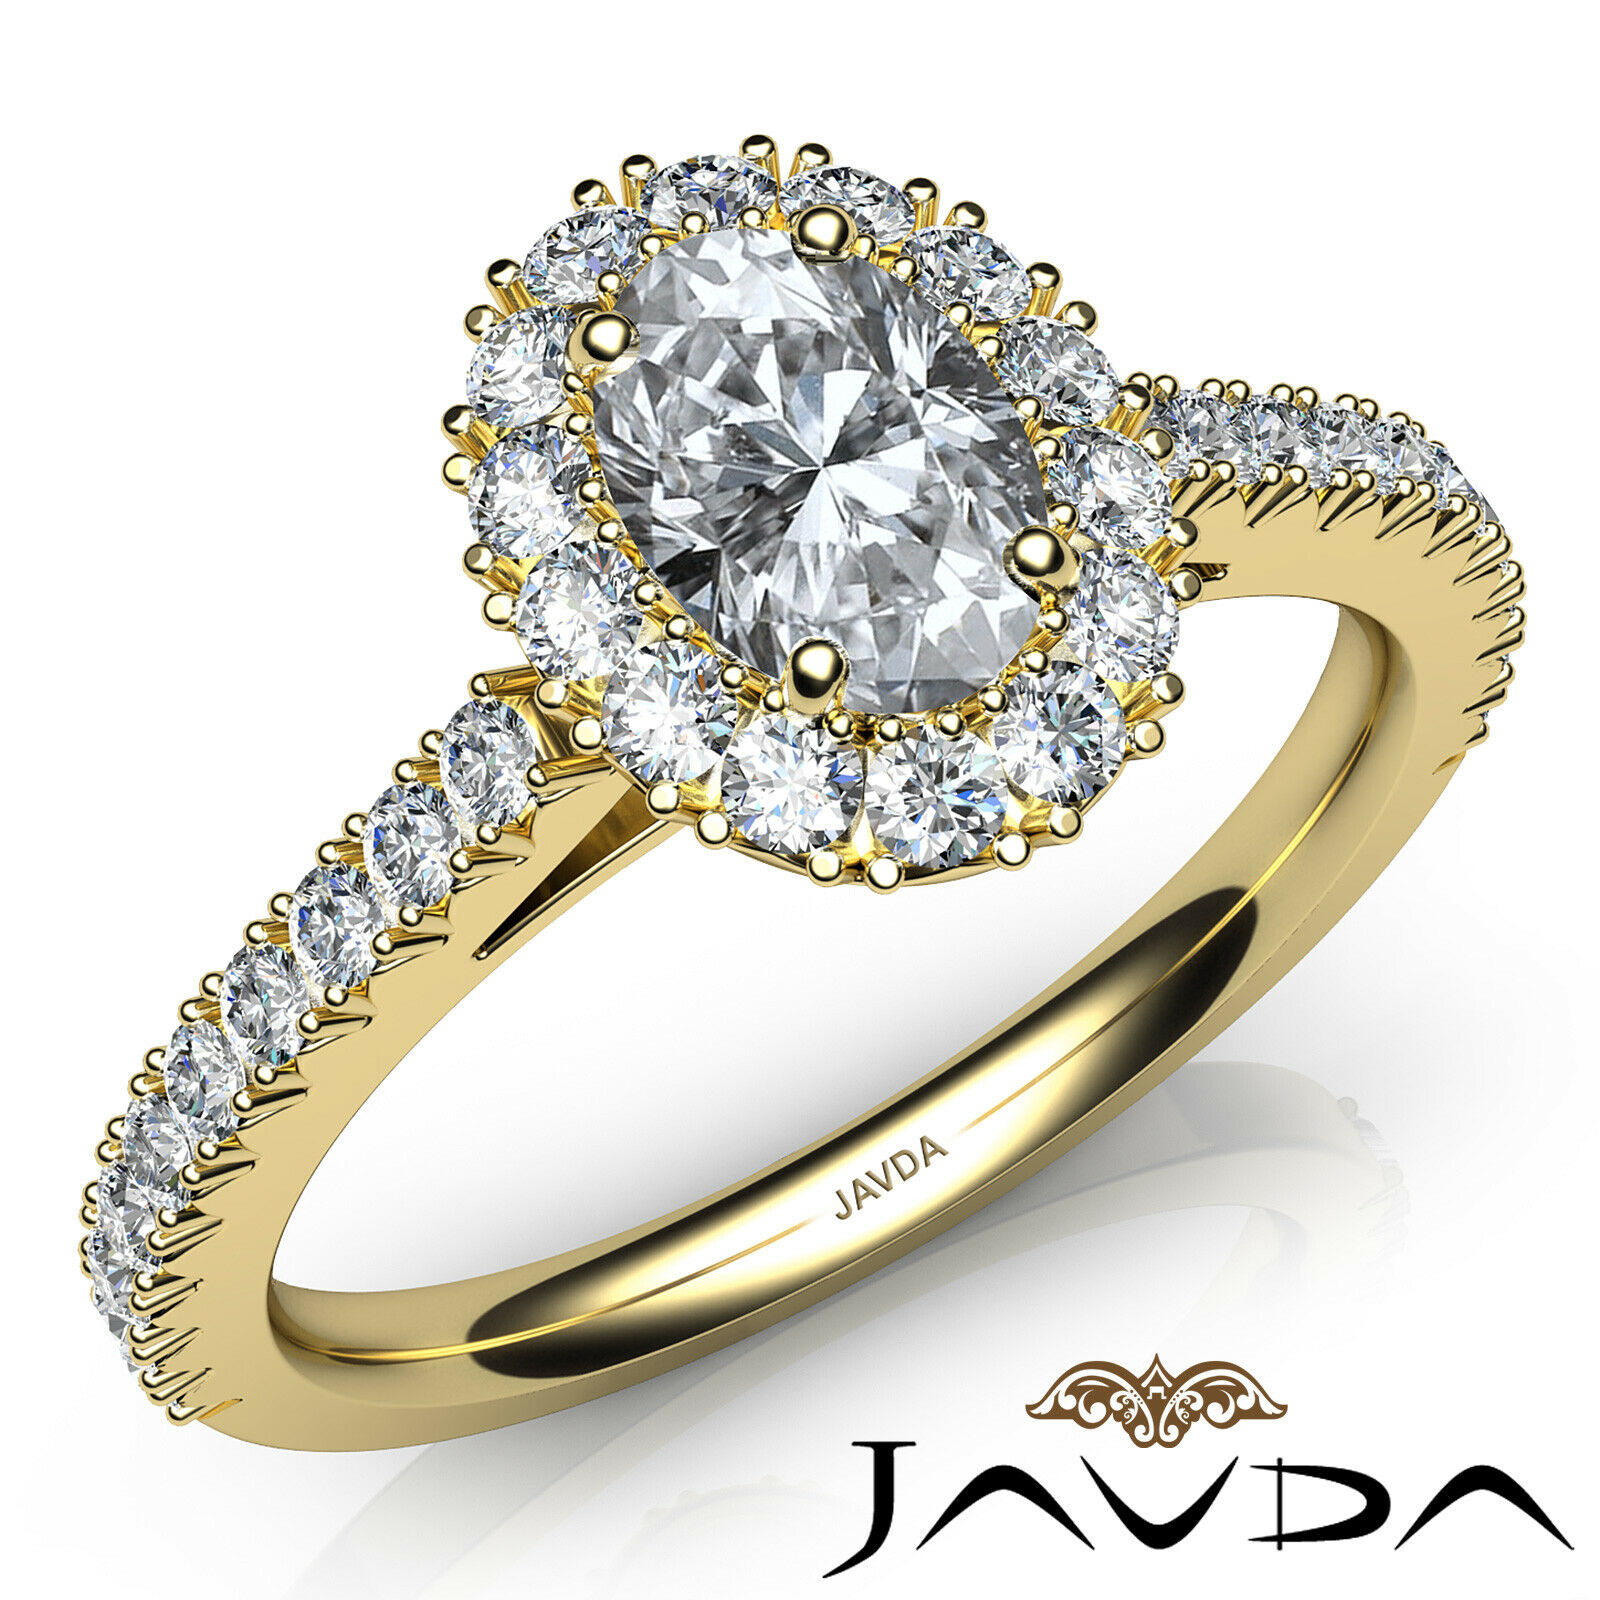 1.5ctw French V Cut Halo Pave Oval Diamond Engagement Ring GIA F-VVS2 White Gold 8